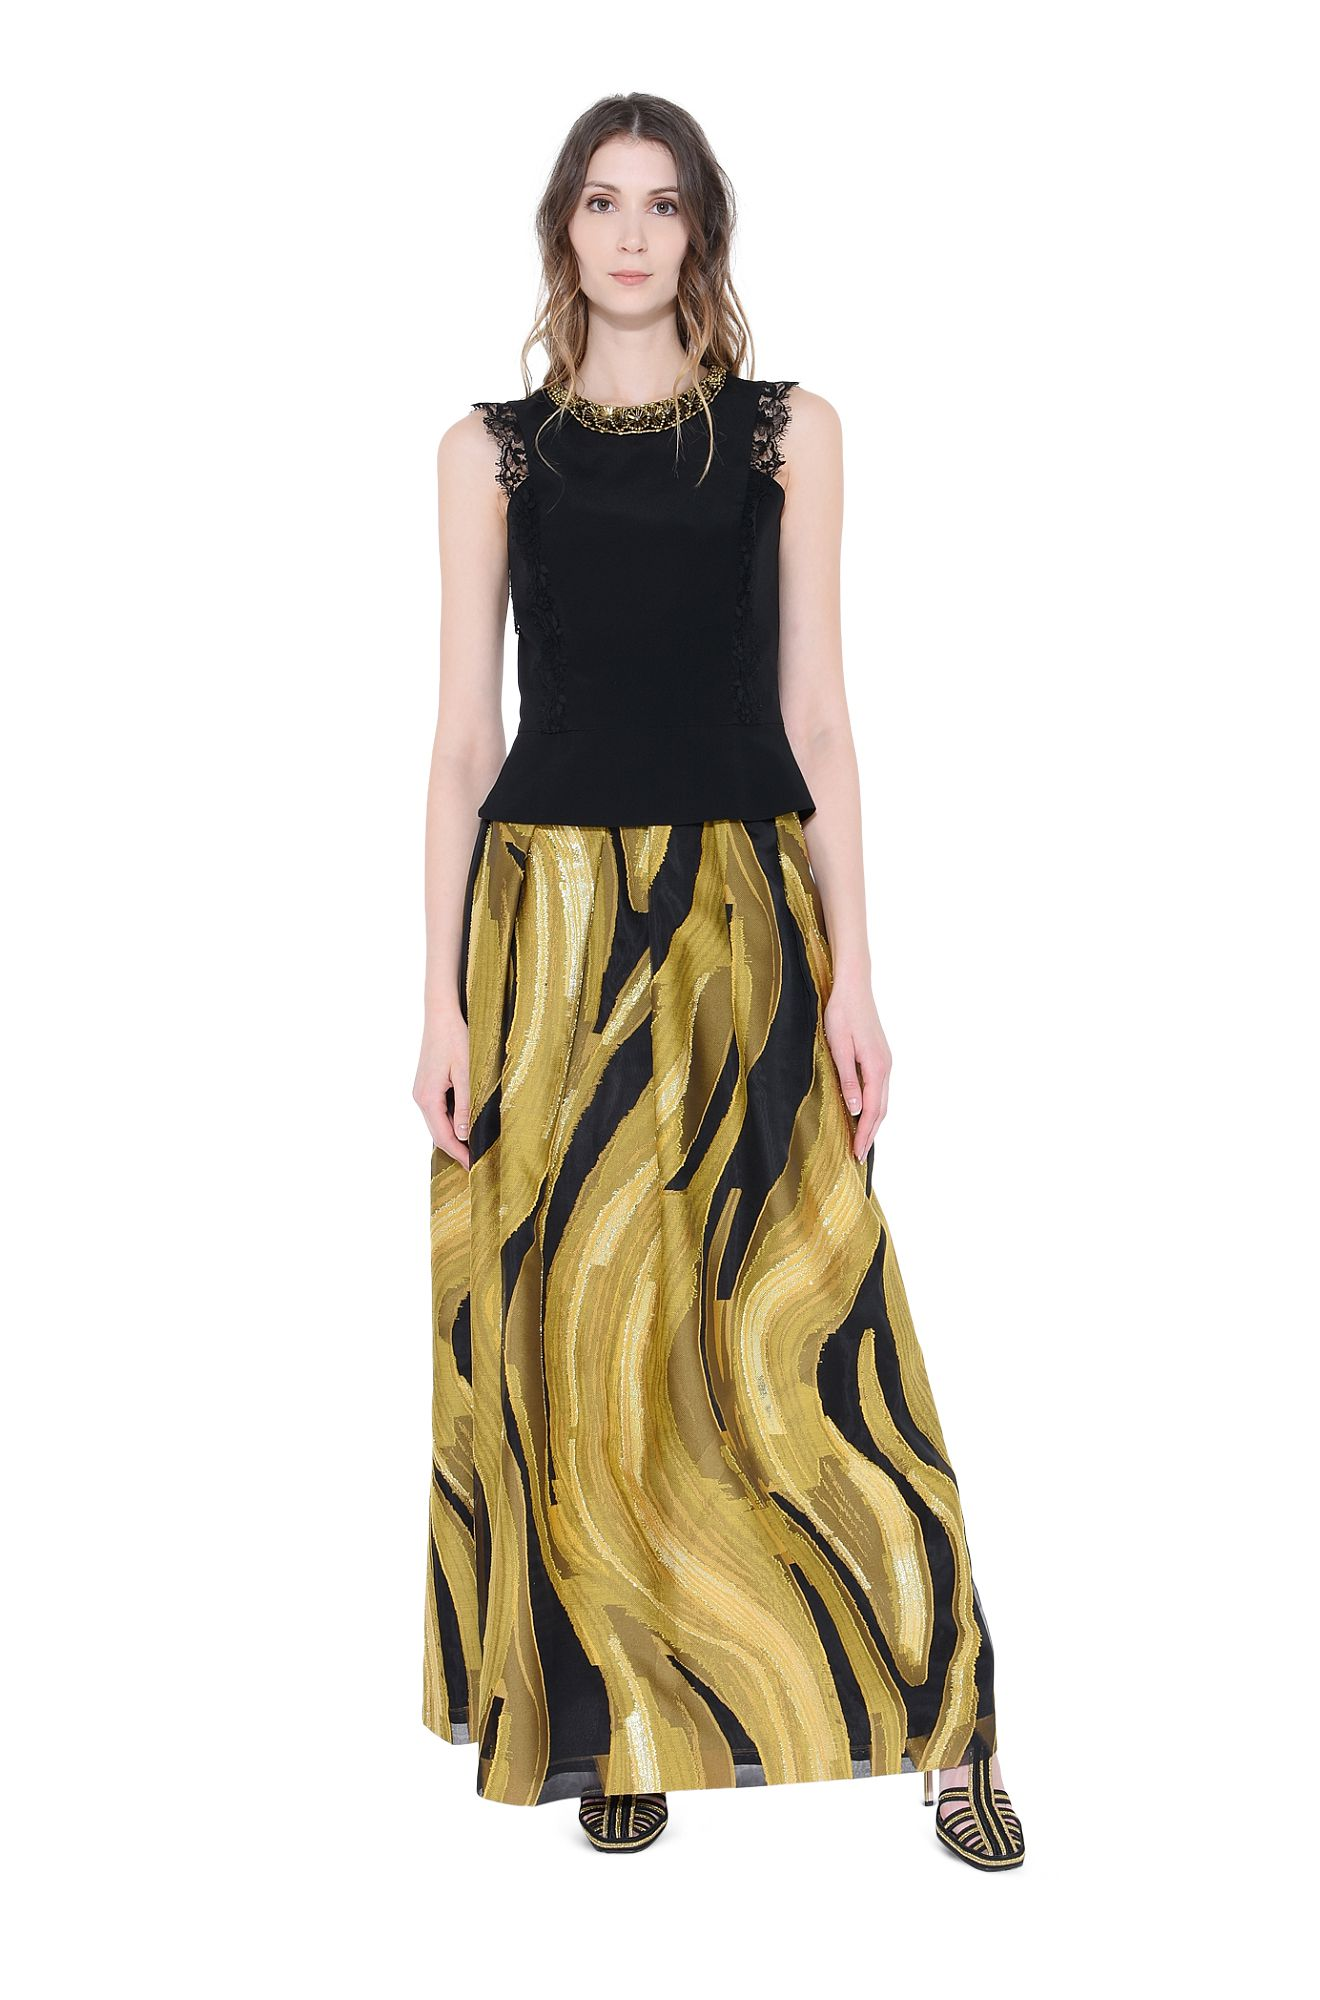 GOLD WAVES-SKIRT